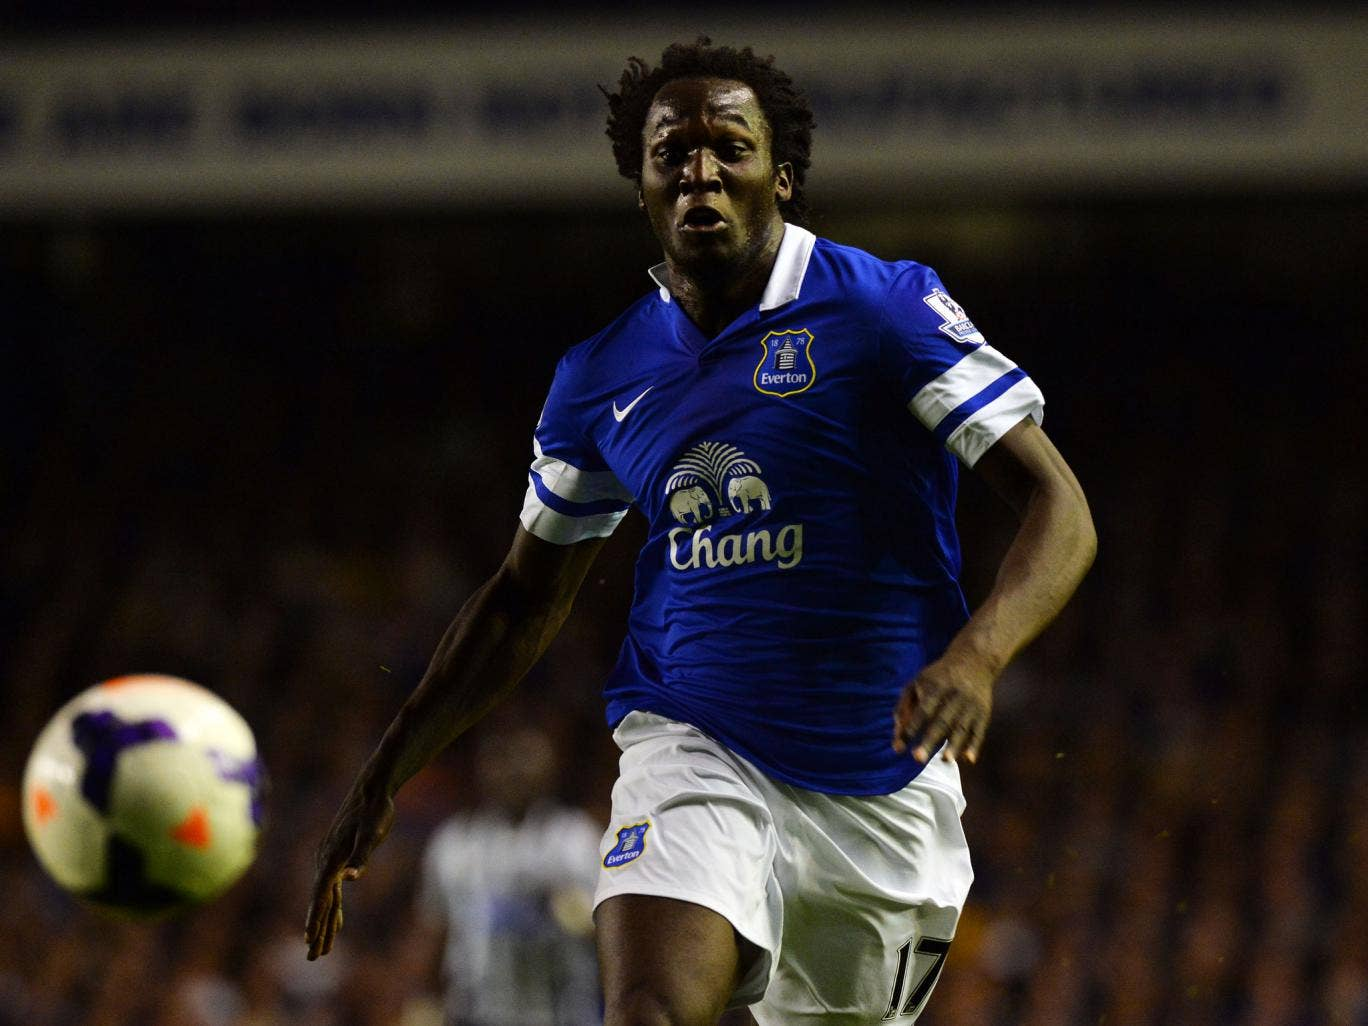 Romelu Lukaku scored twice in Everton's 3-2 win over Newcastle